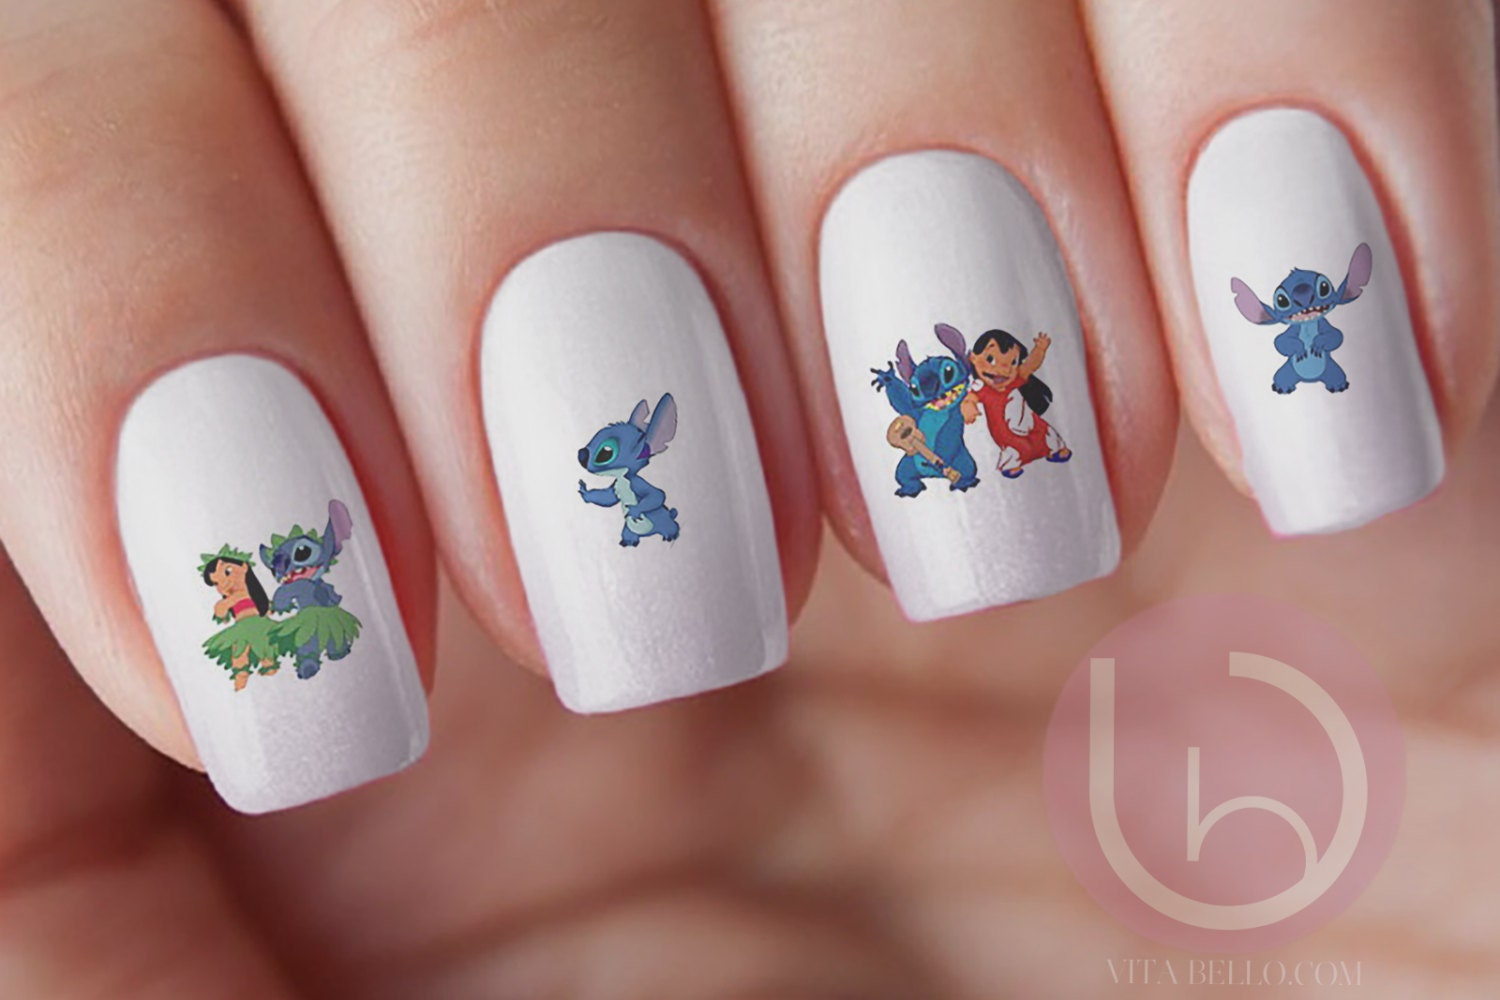 Lilo and Stitch Water-Slide Decal, Nail Design, Nails, Press On Nail ...